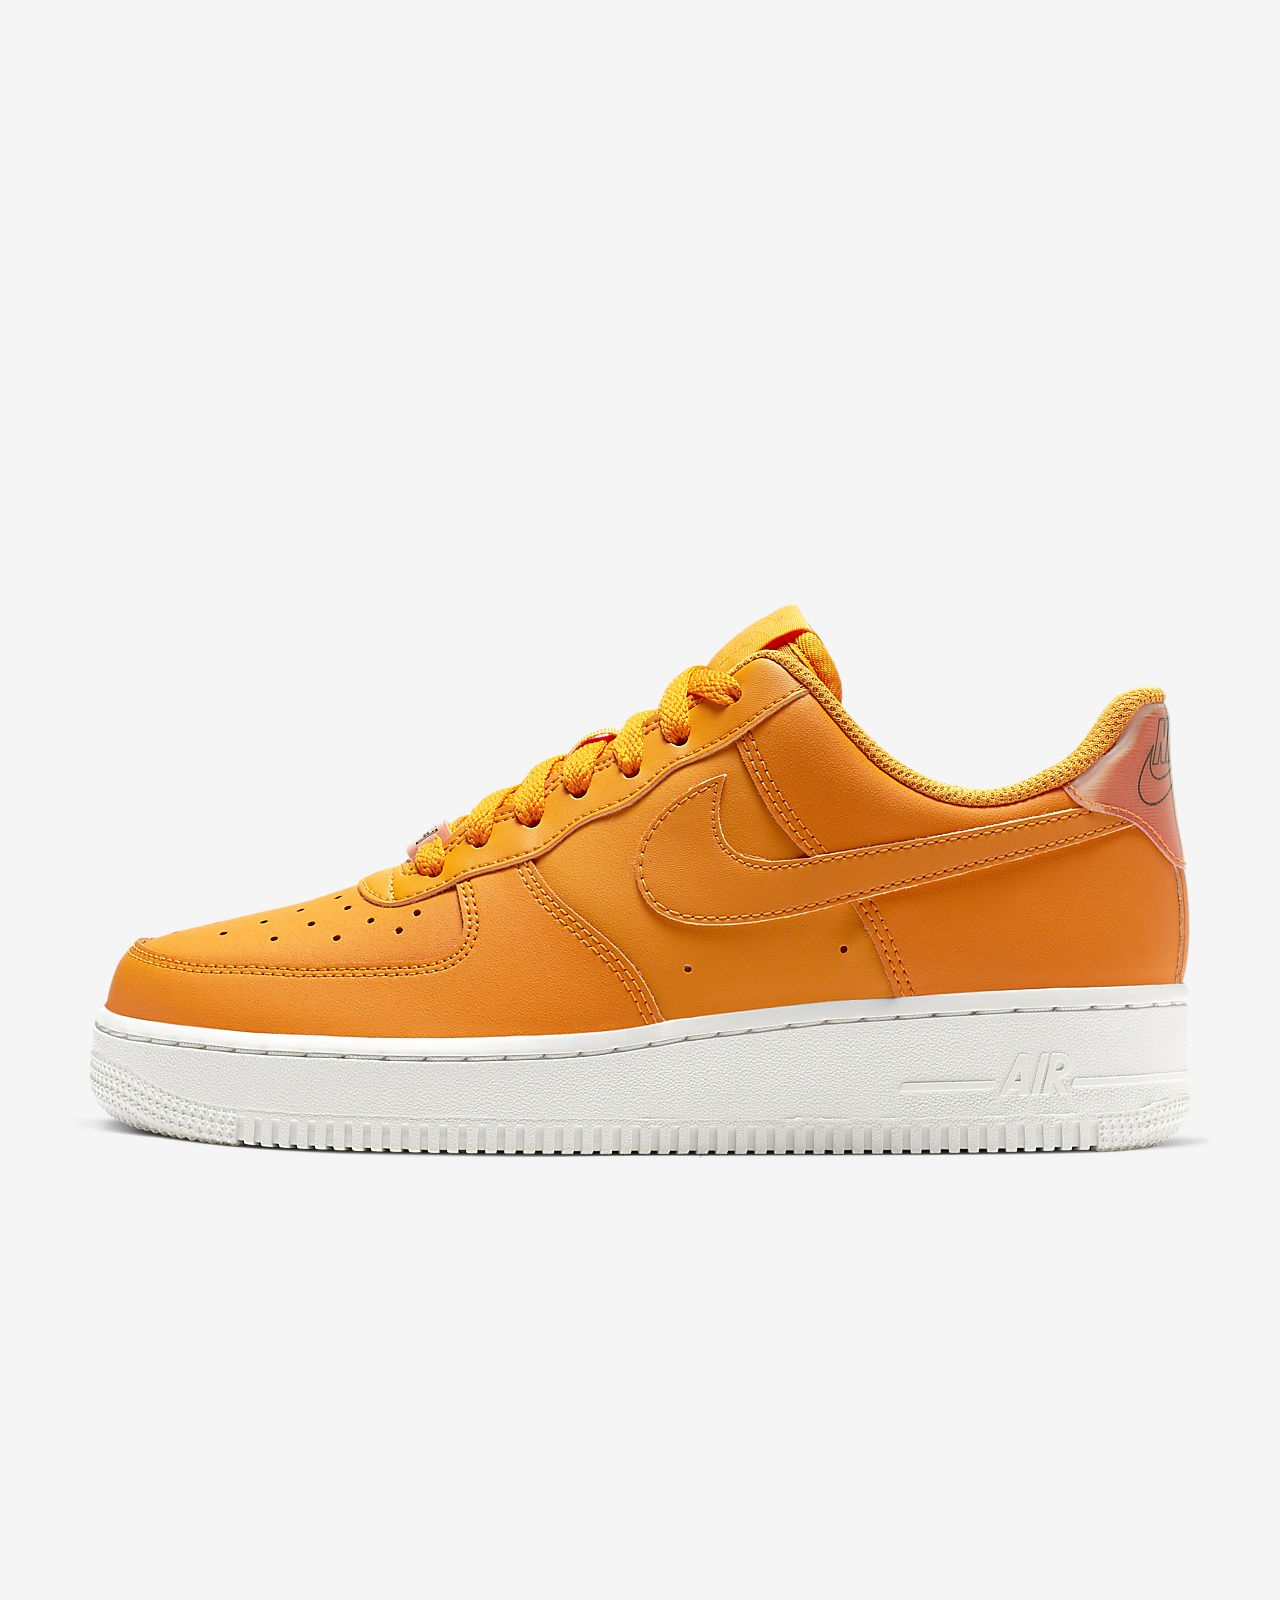 551026108a Nike Air Force 1 '07 Essential Women's Shoe